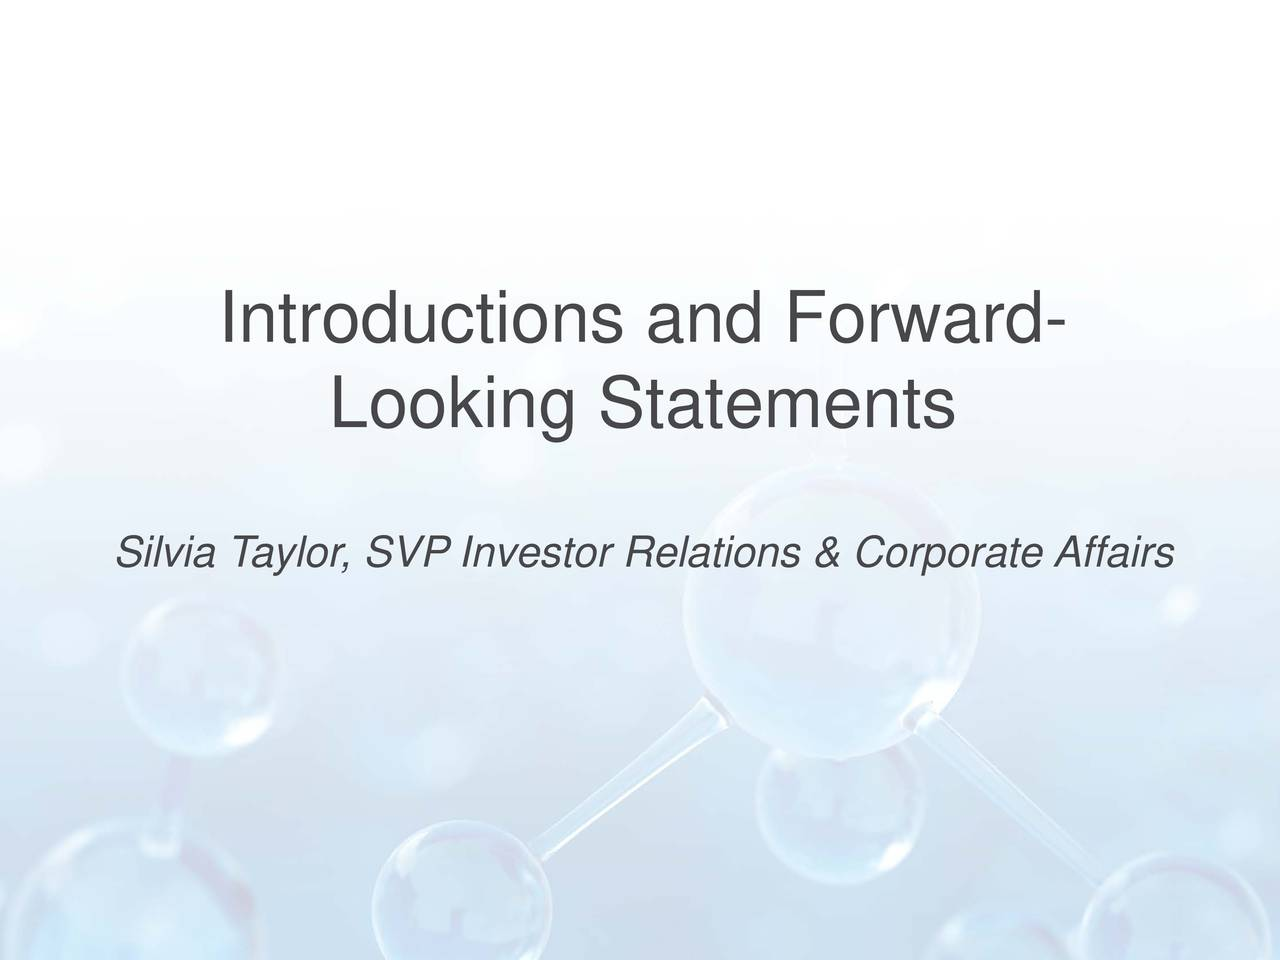 Looking Statements Silvia Taylor, SVP Investor Relations & Corporate Affairs